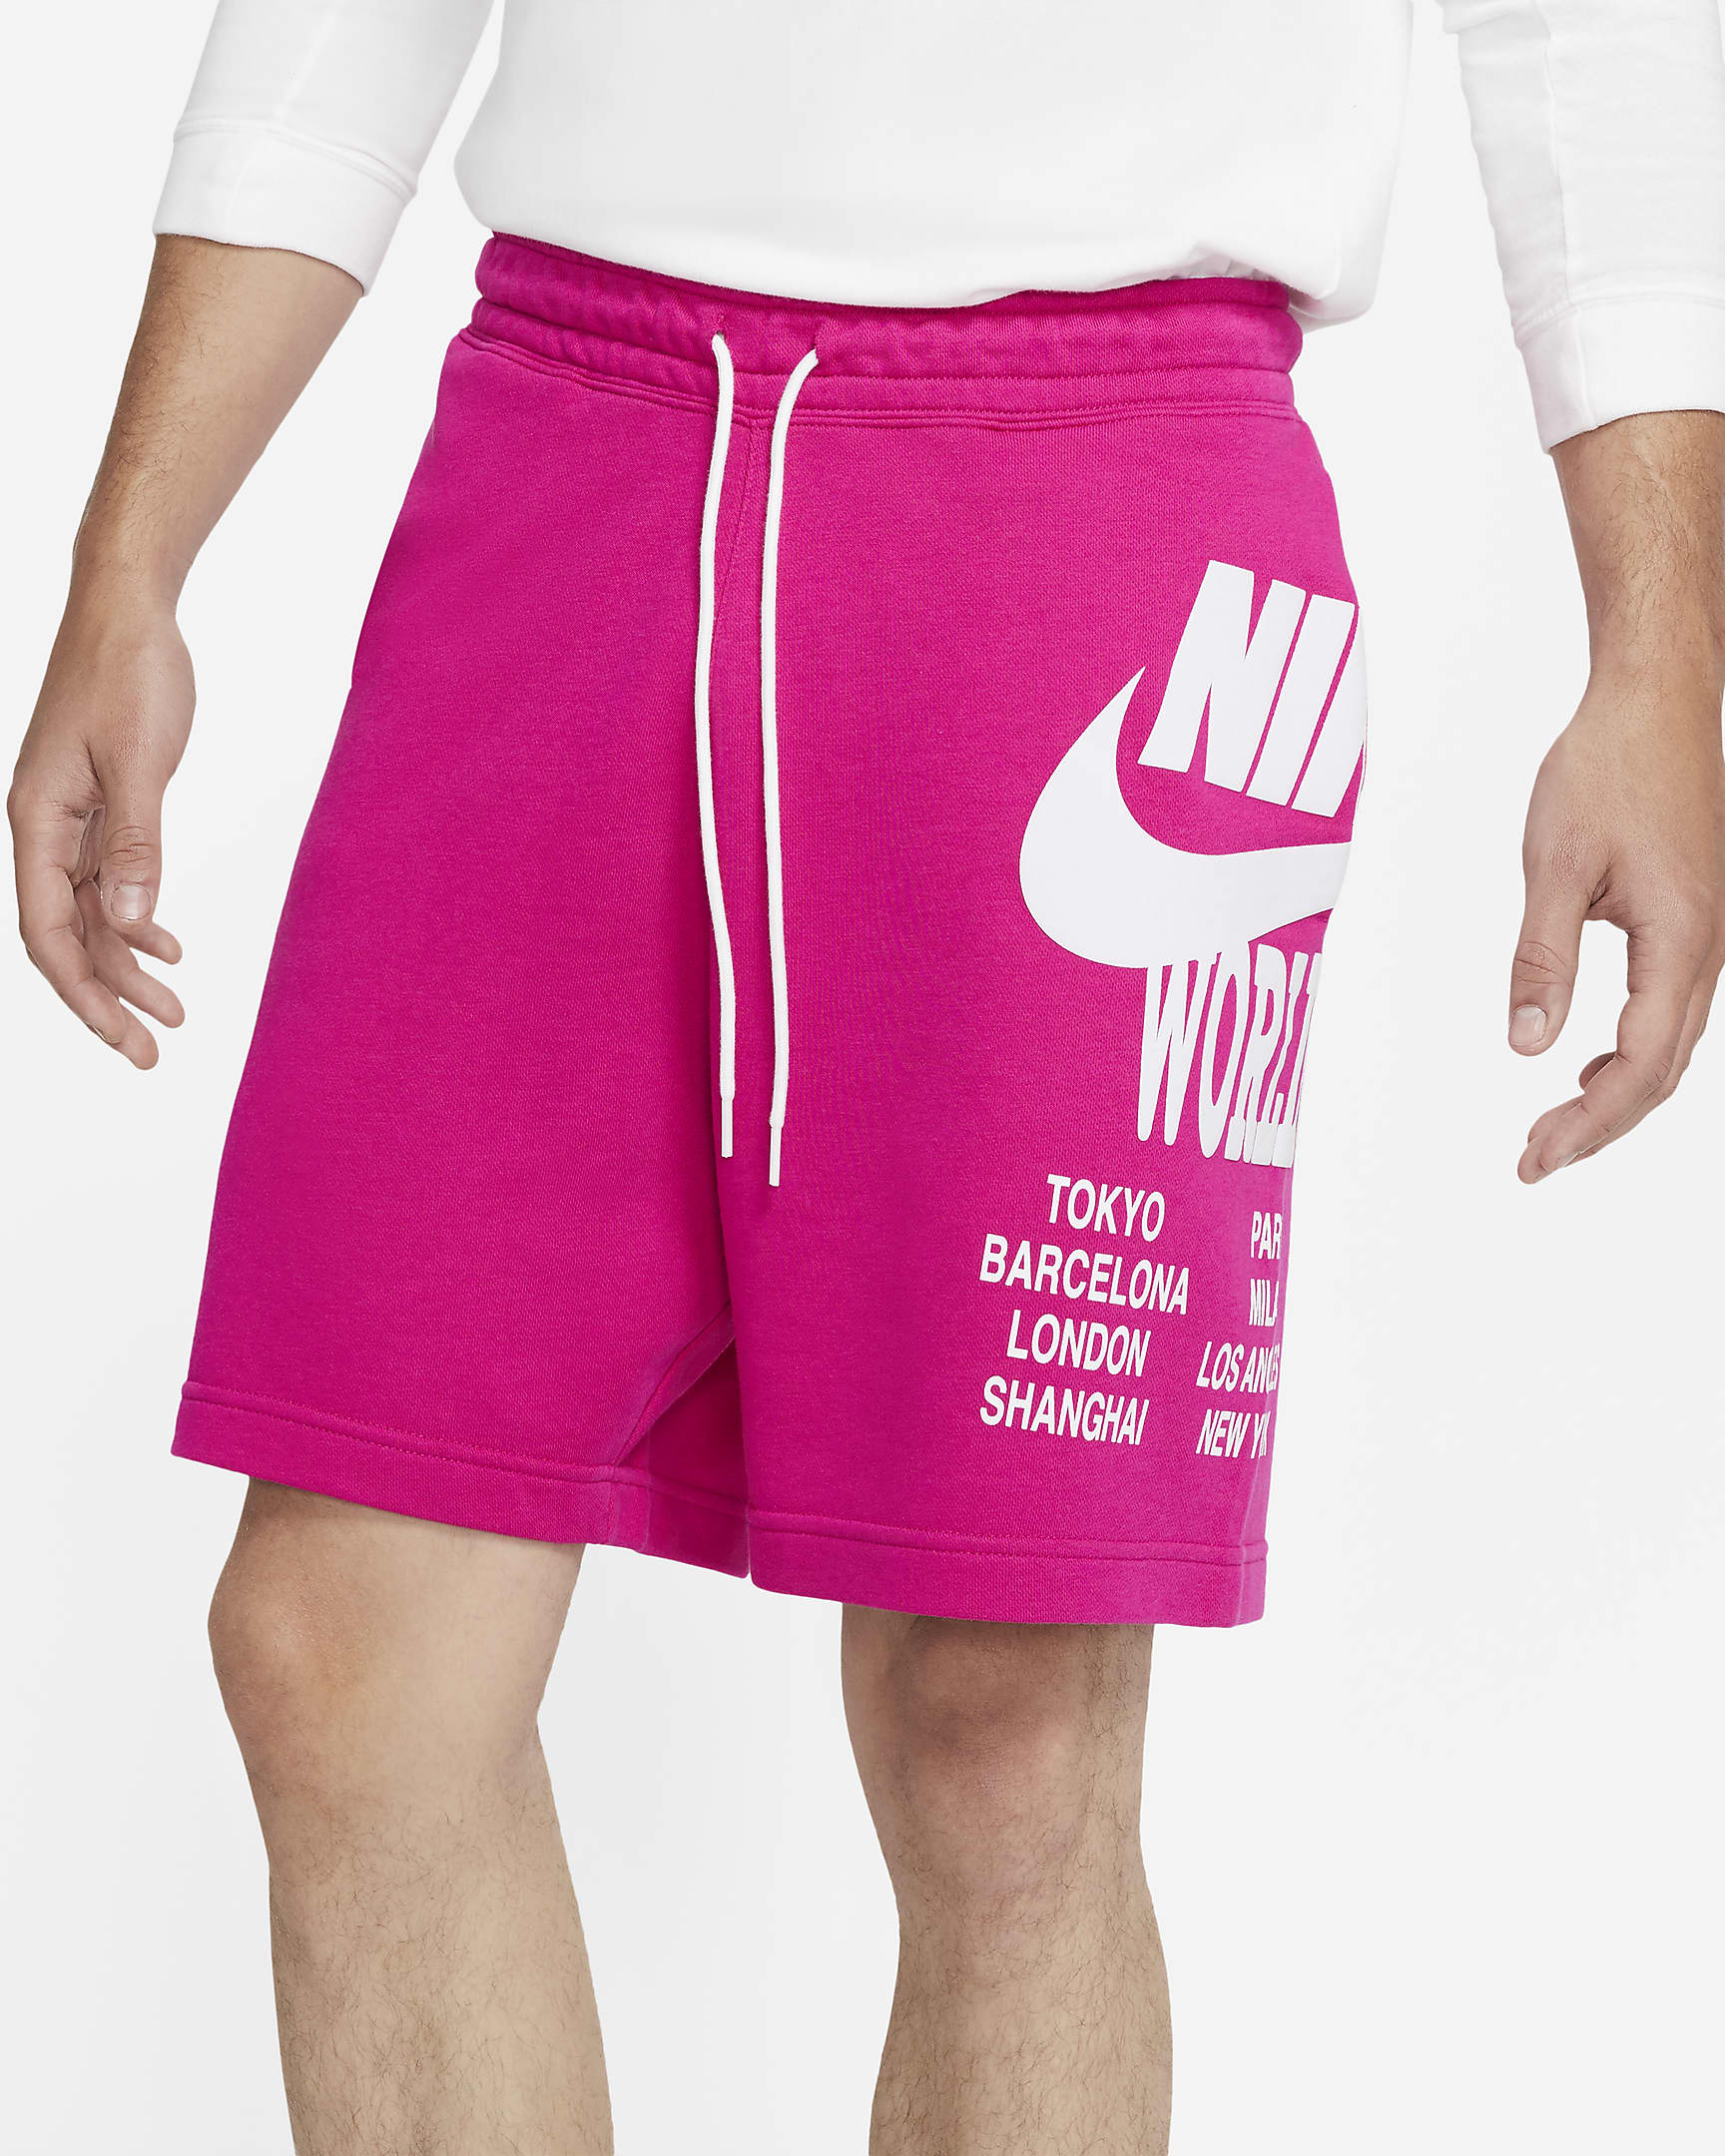 sportswear-mens-french-terry-shorts-Q00gBn-16